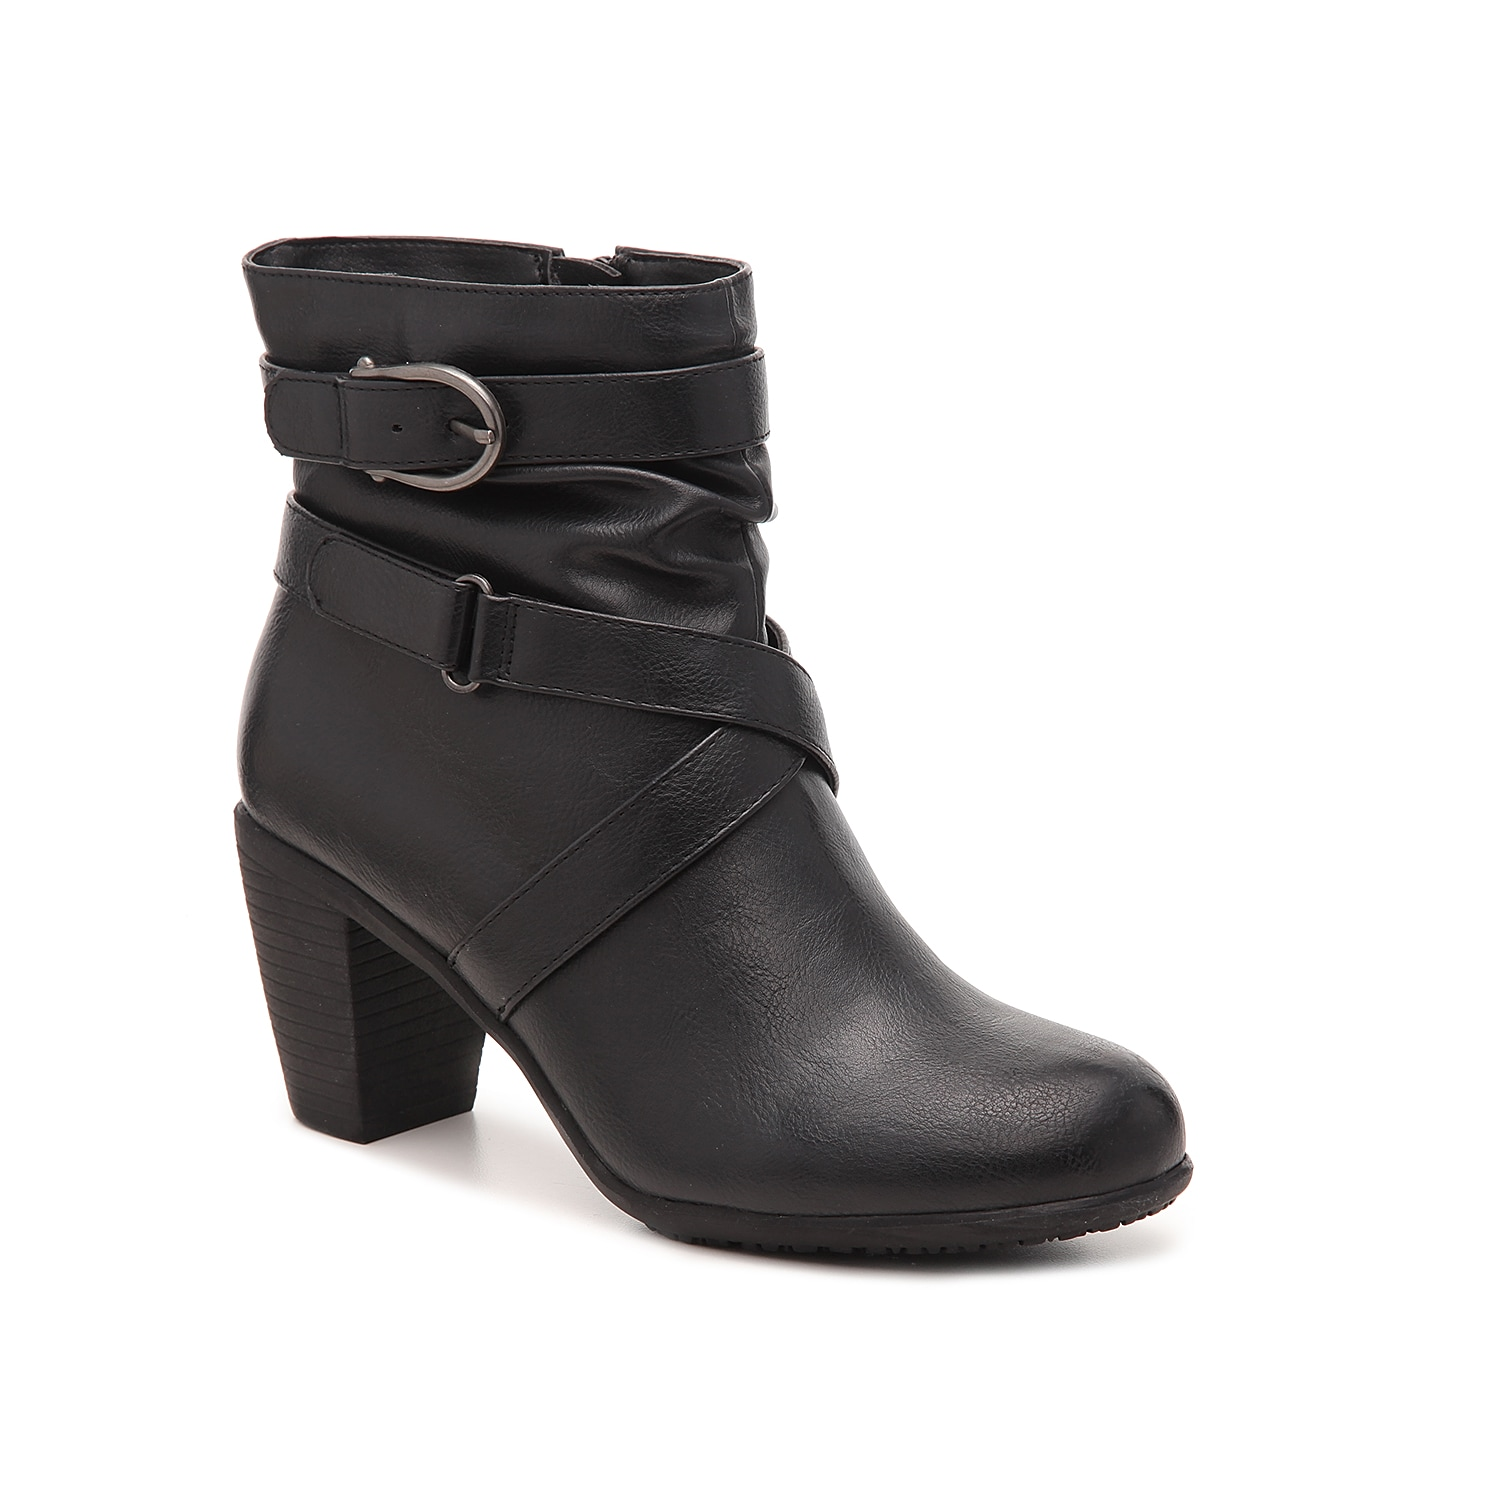 The Oyster bootie from Levity will give your wardrobe limitless styling options. The buckle accents and stacked heel will elevate your entire look!